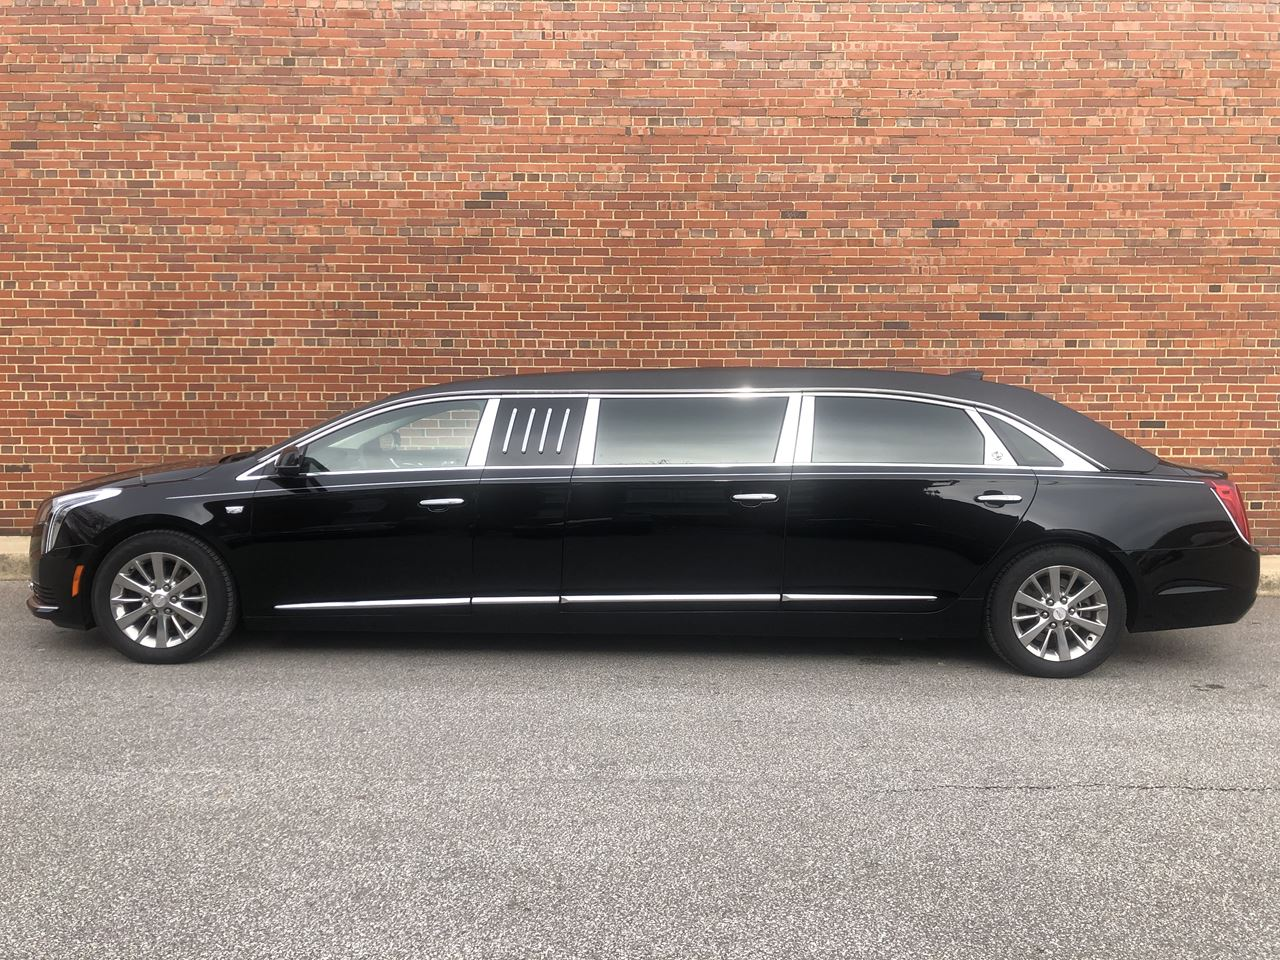 2019 Cadillac SS 70 Stretch Limousine 402 19